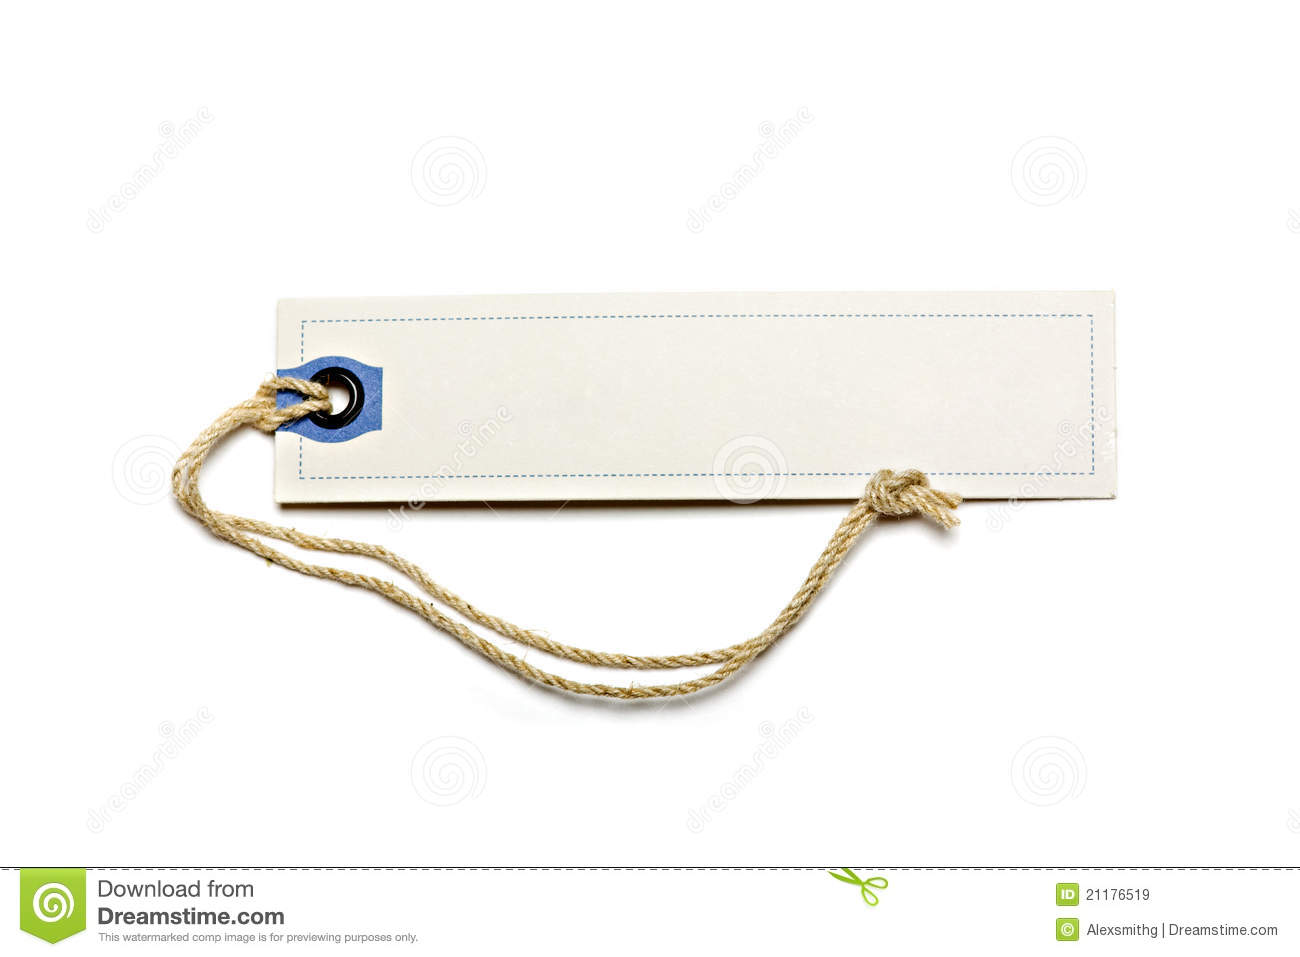 Blank tag tied with brown string.